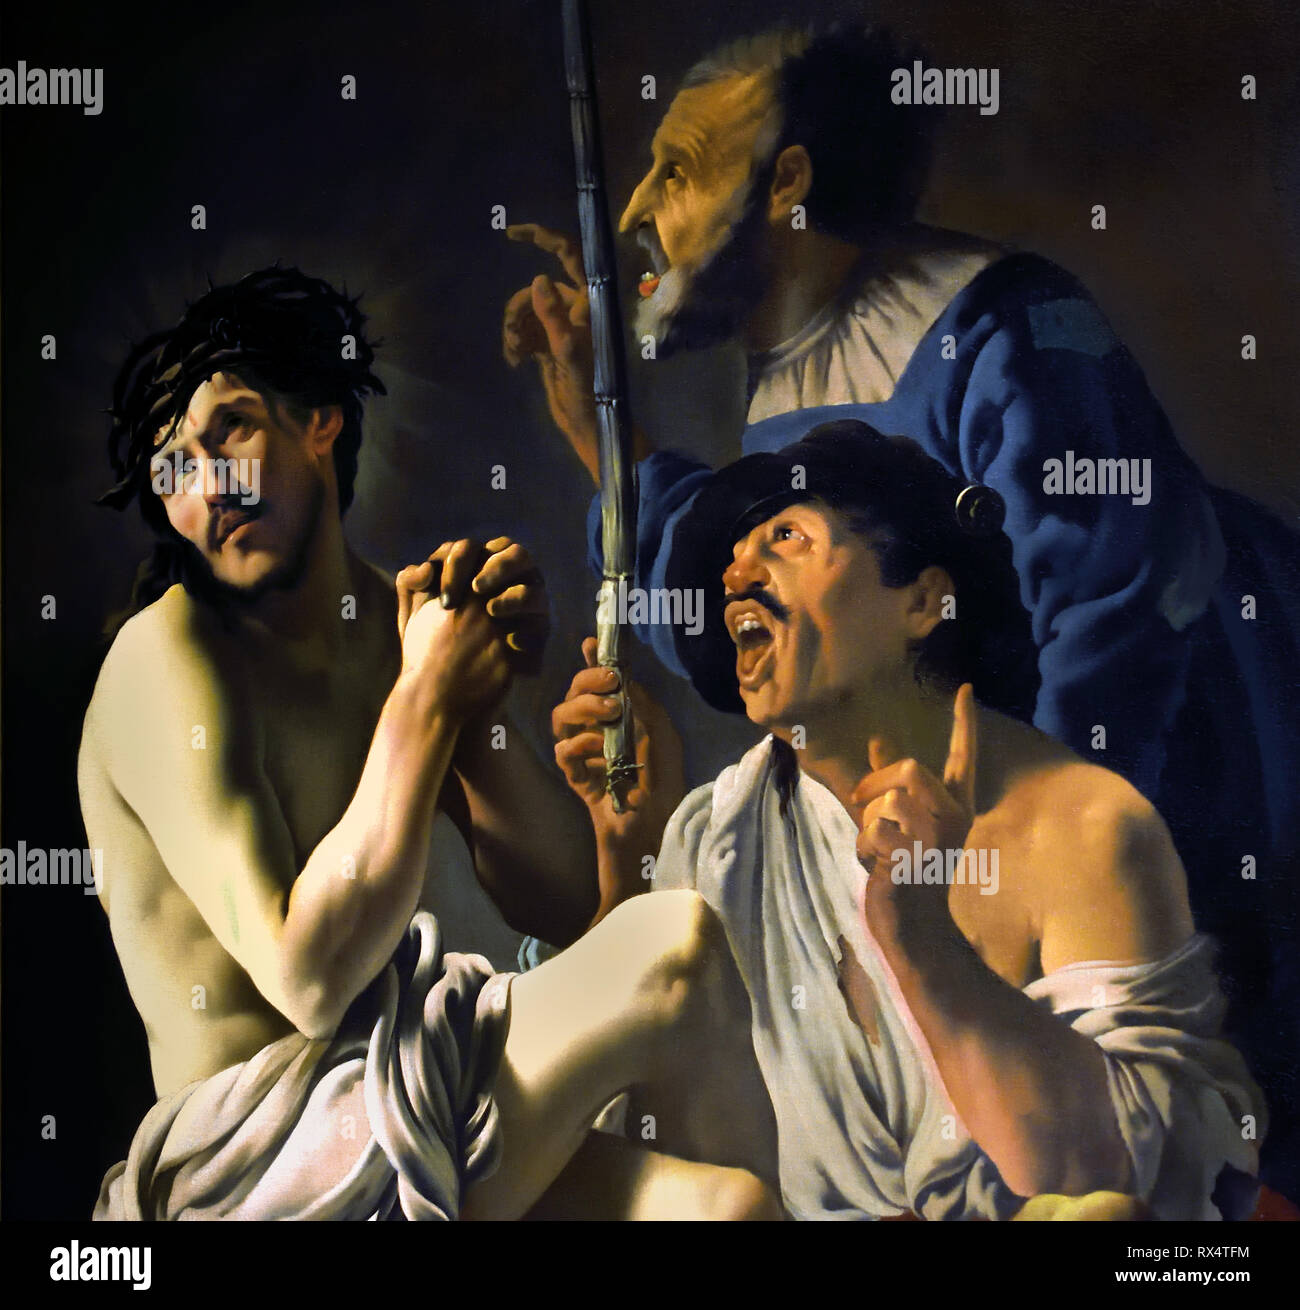 The Mocking of Christ 1625 Hendrick ter Brugghen 1588 - 1629 Dutch The Netherlands( Caravaggists, Style of Caravaggio) - Stock Image